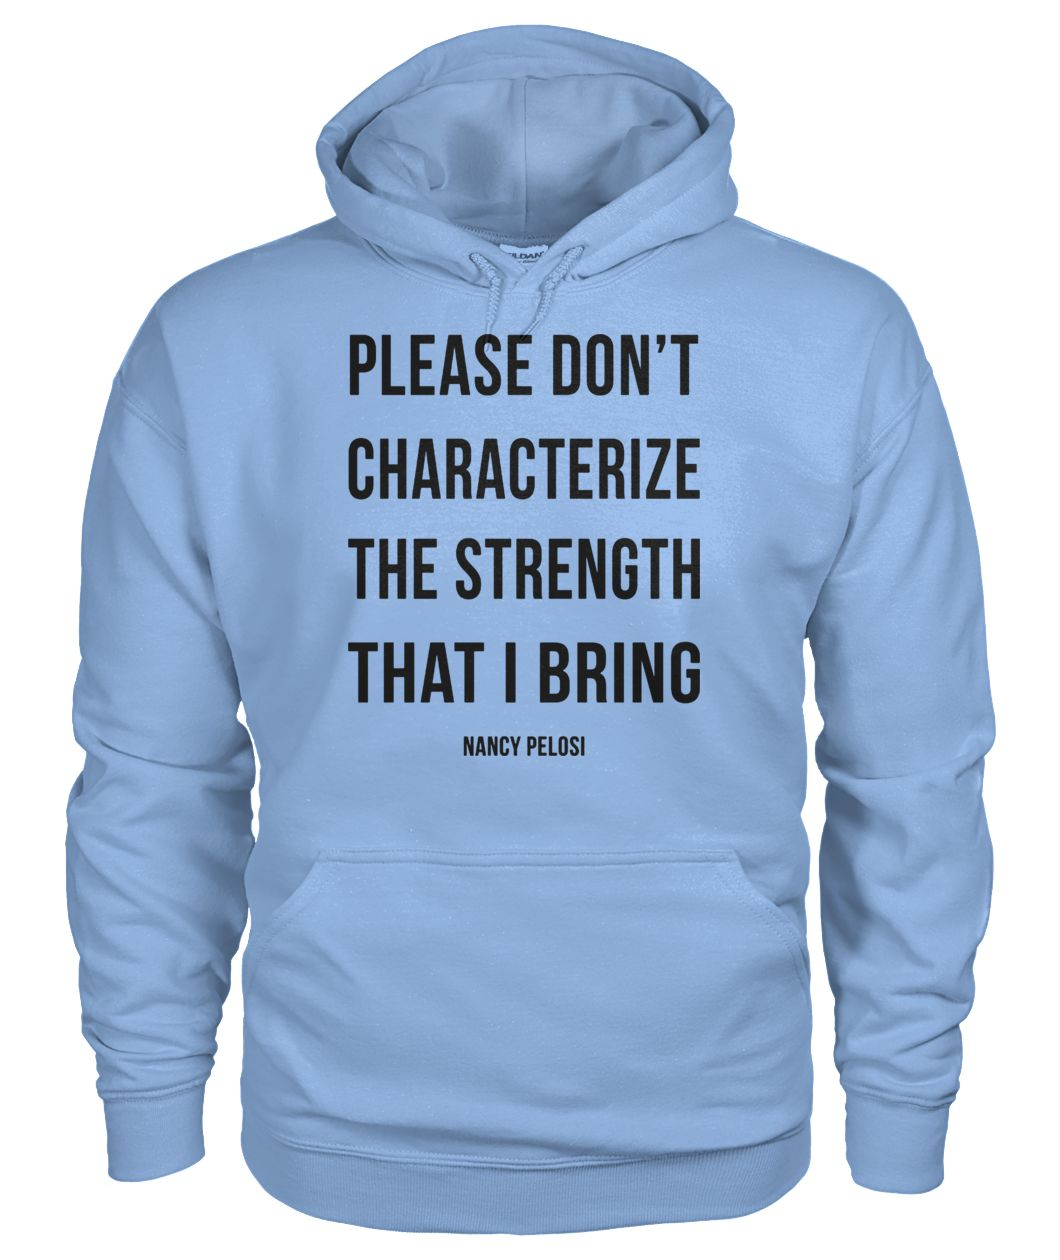 Please don't characterize the strength that I bring gildan hoodie